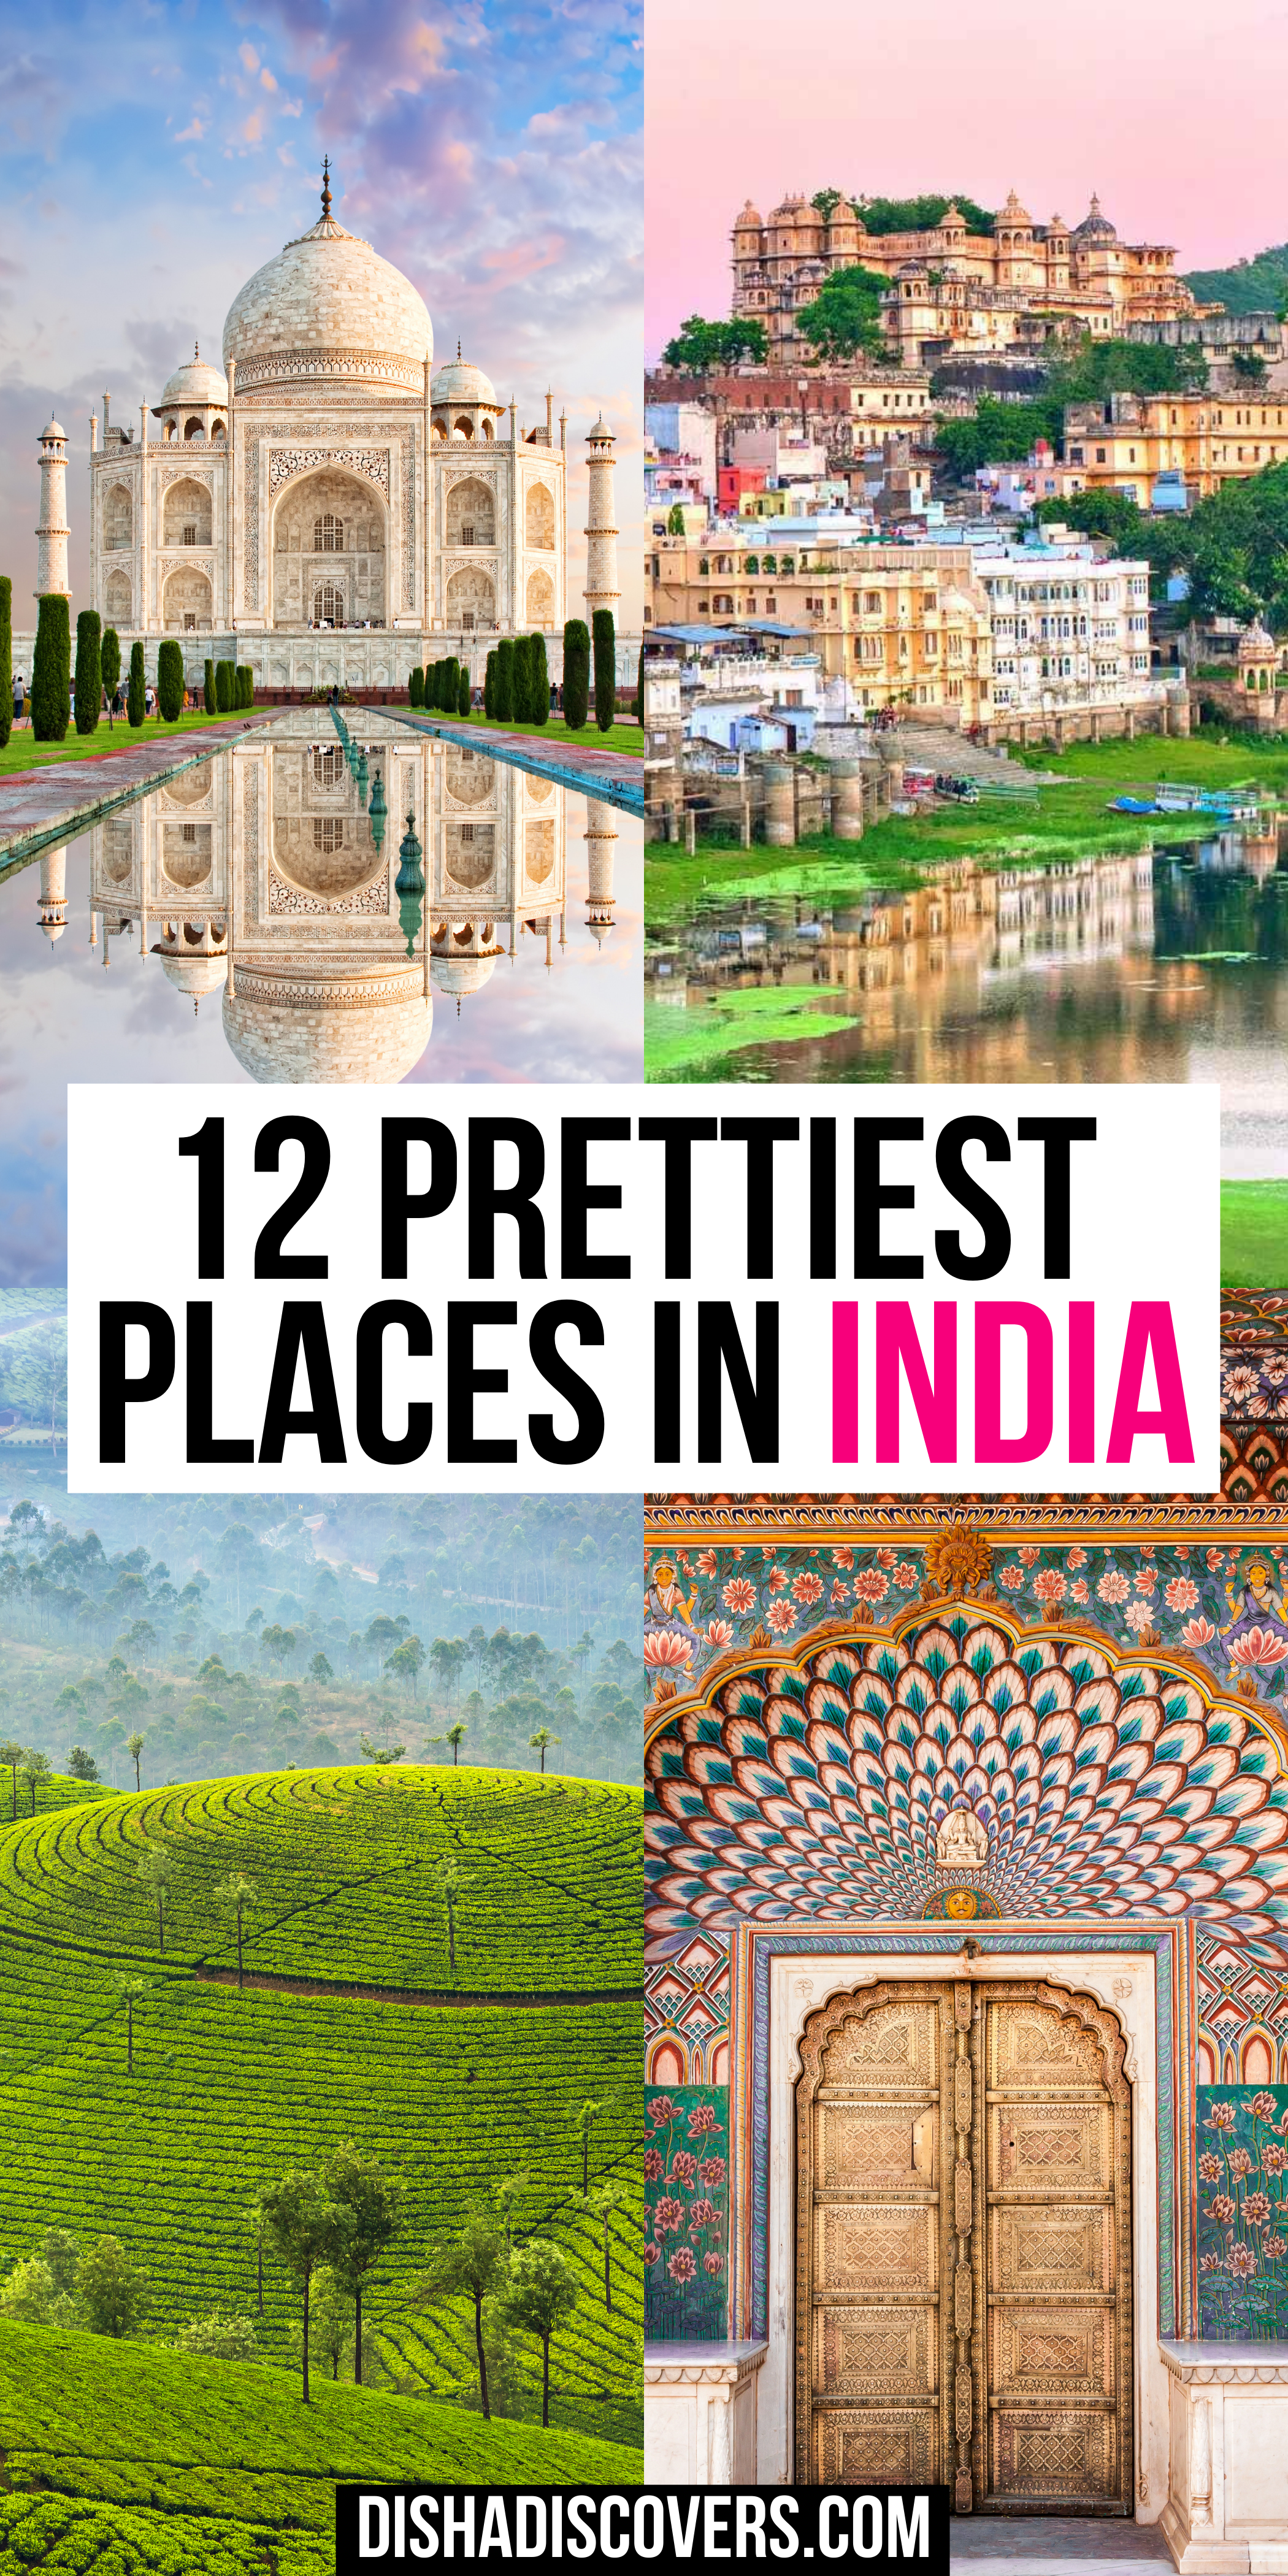 Best Places To Visit In India In December 12 Gorgeous Locations In 2021 Travel Destinations Asia Cool Places To Visit Asia Travel